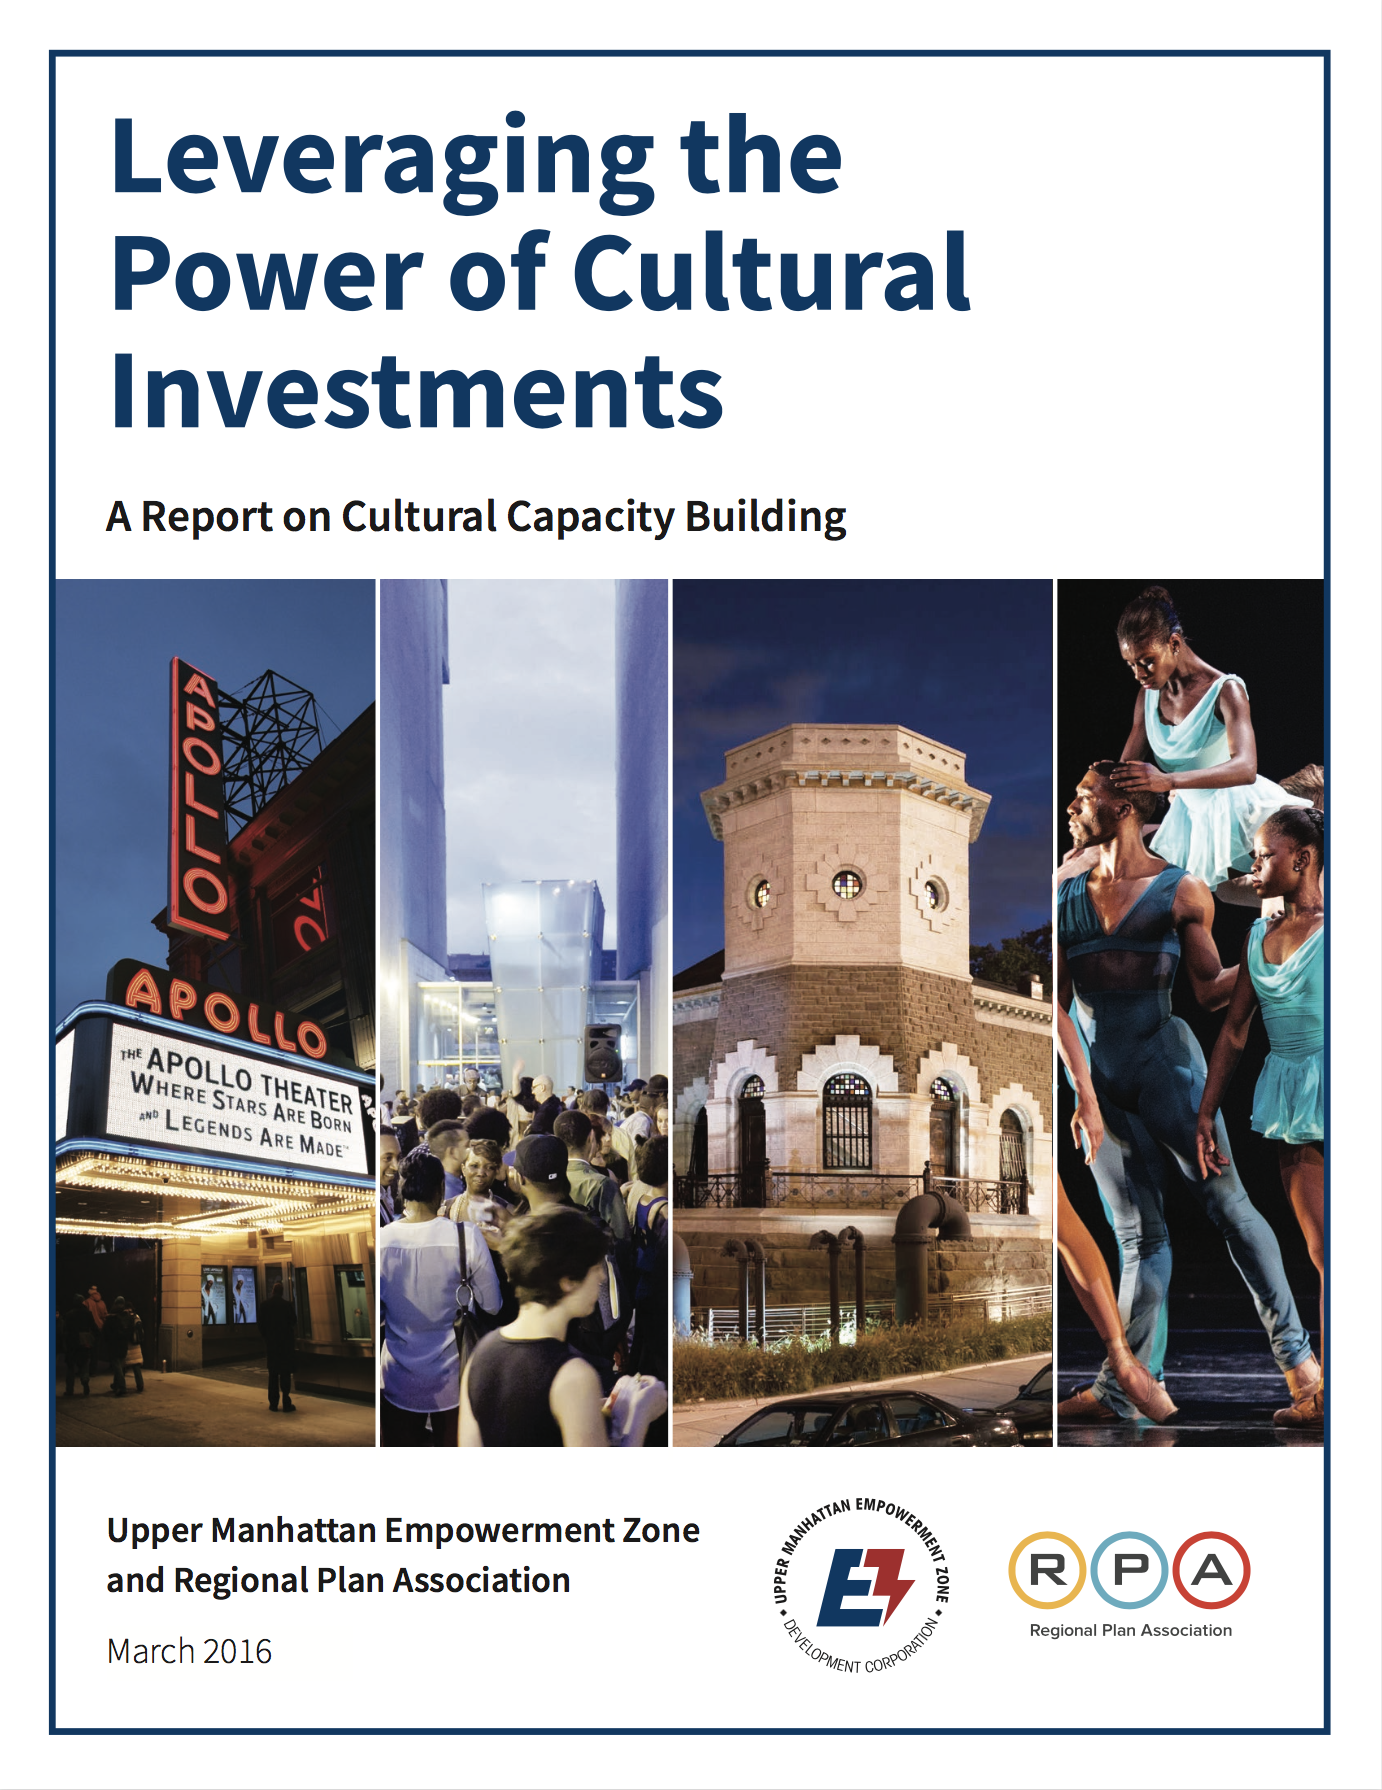 Leveraging the Power of Cultural Investments